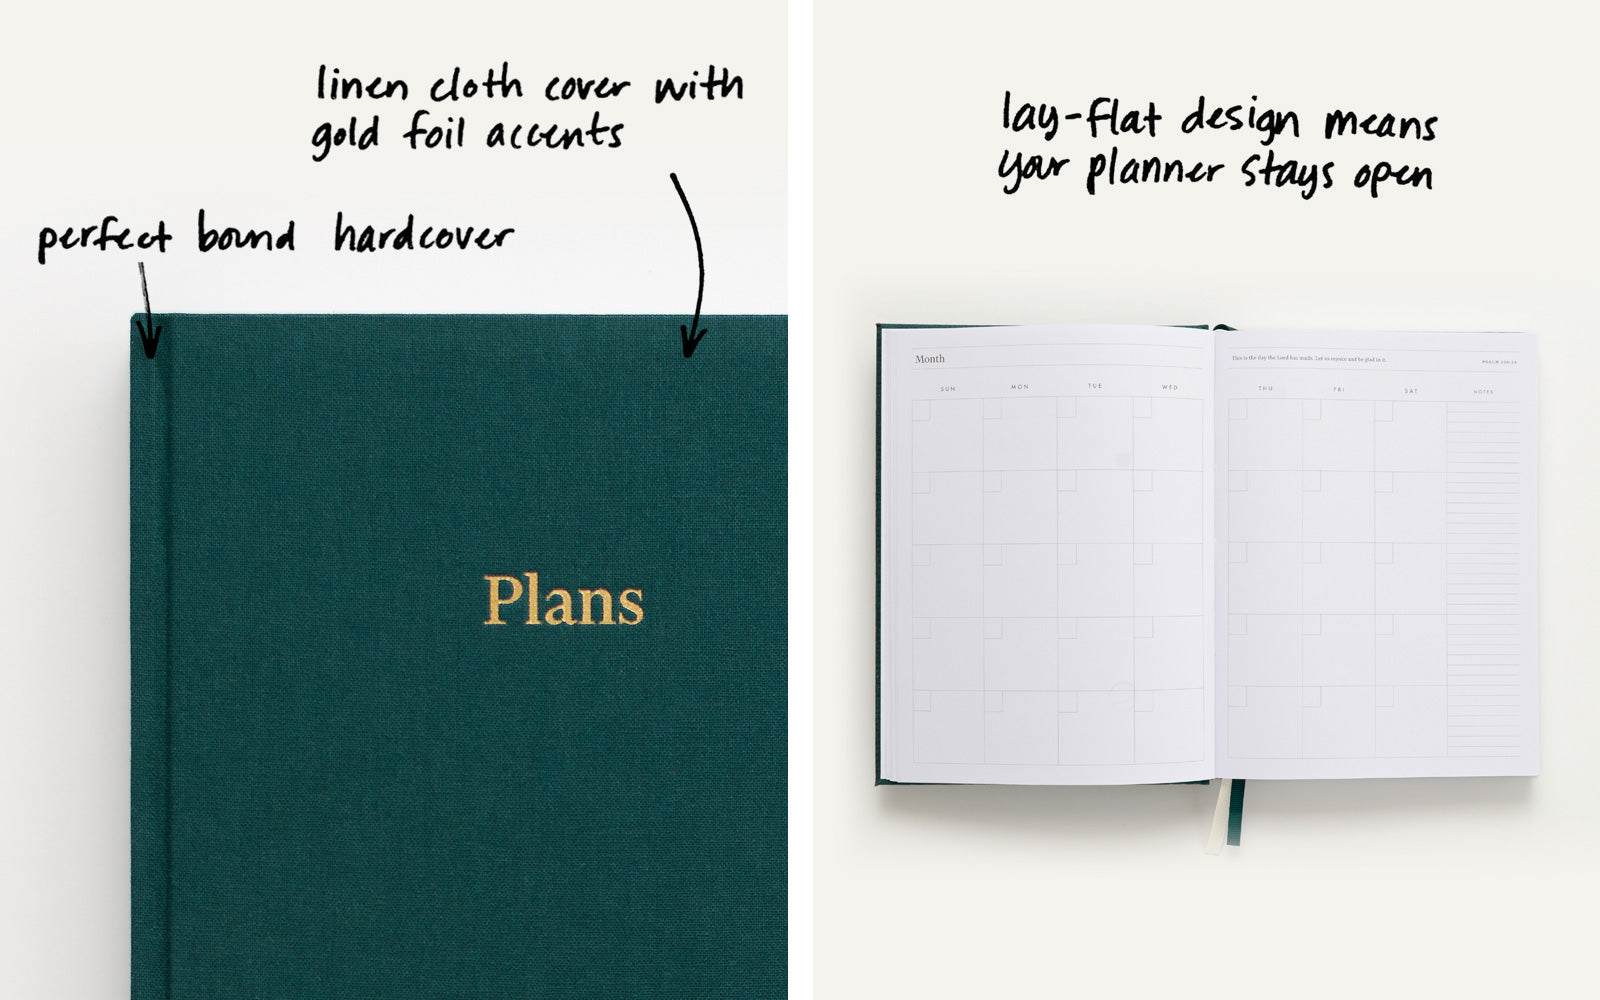 Linen cloth cover with gold foil accents. Lay-flat design means your planner stays open.